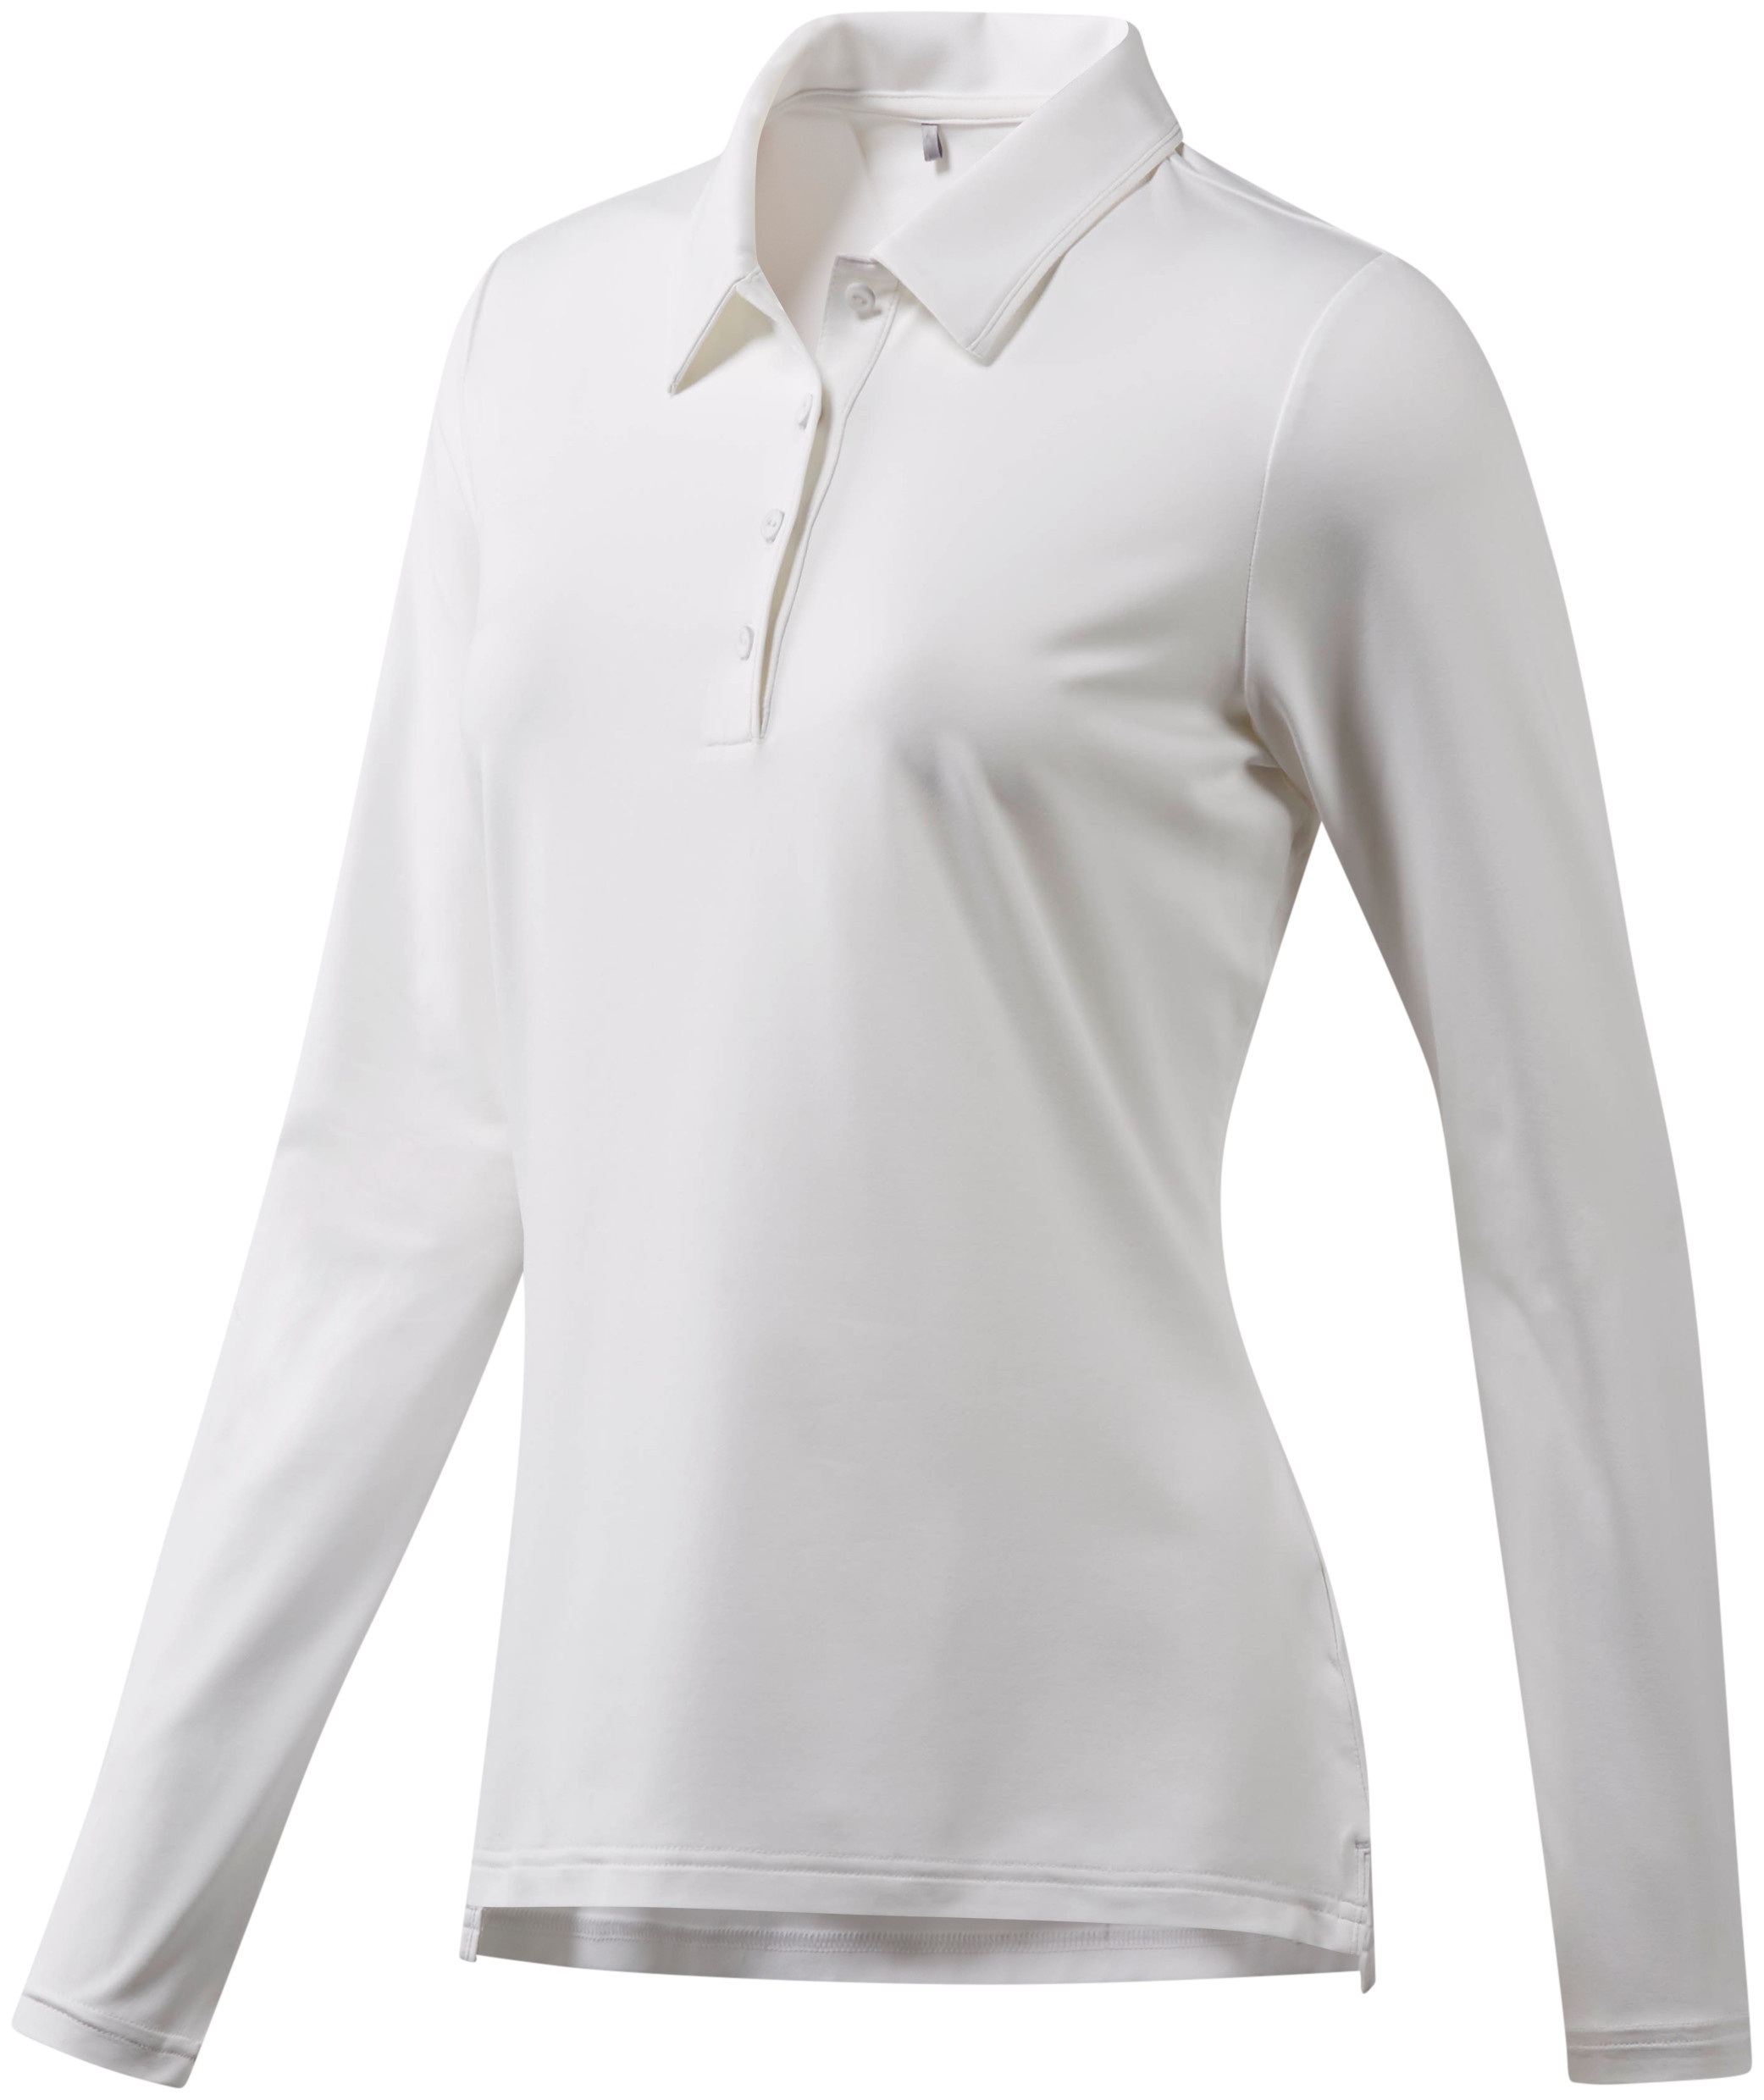 golf polo Ultimate LS Pladies white